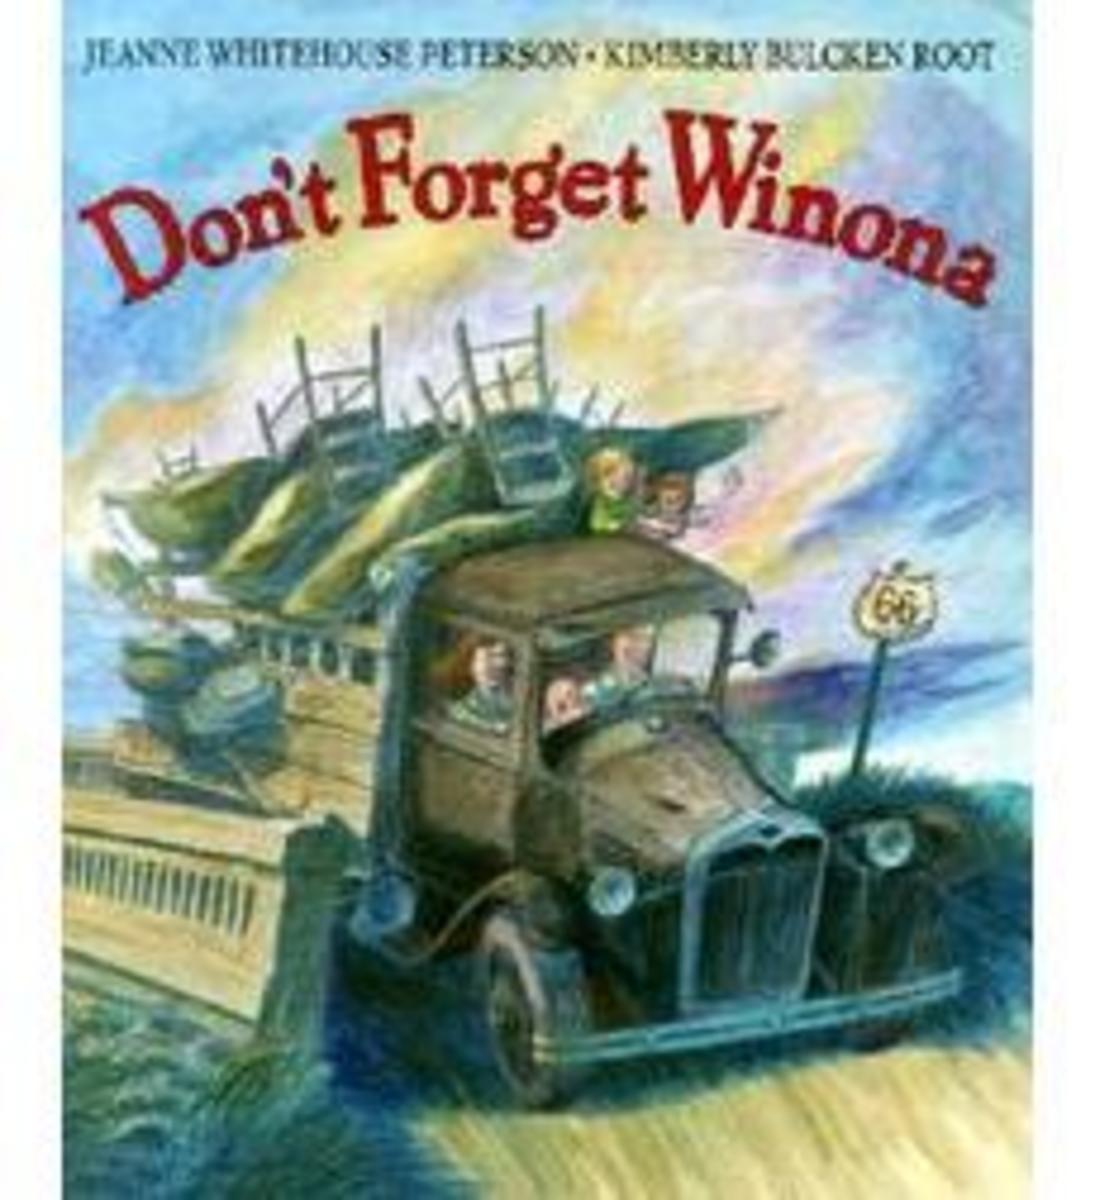 Don't Forget Winona by Jeanne Whitehouse Peterson - Image is from scholastic.com